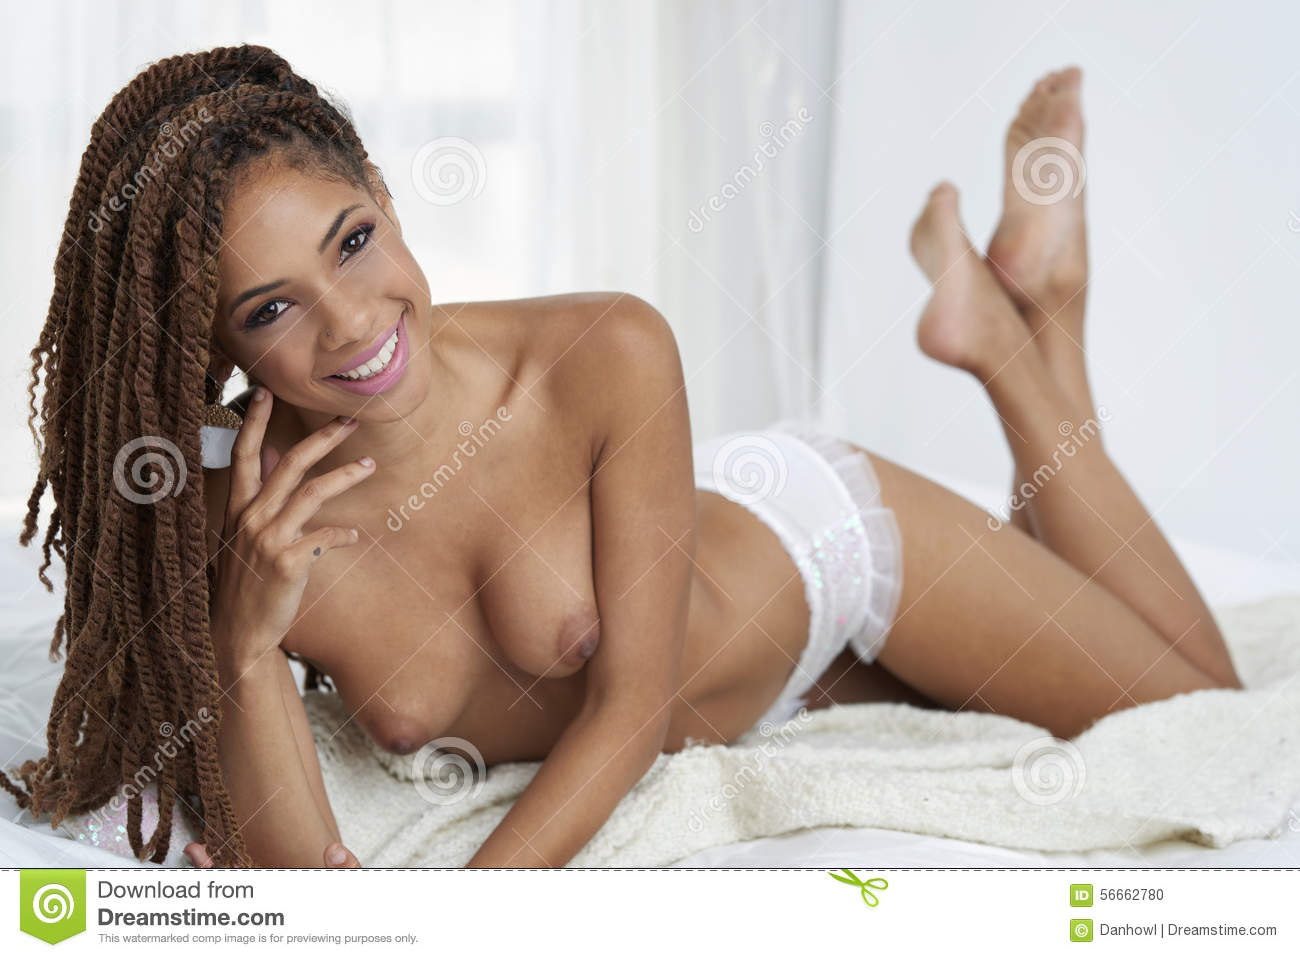 Can help Beautiful black american nude models thank for